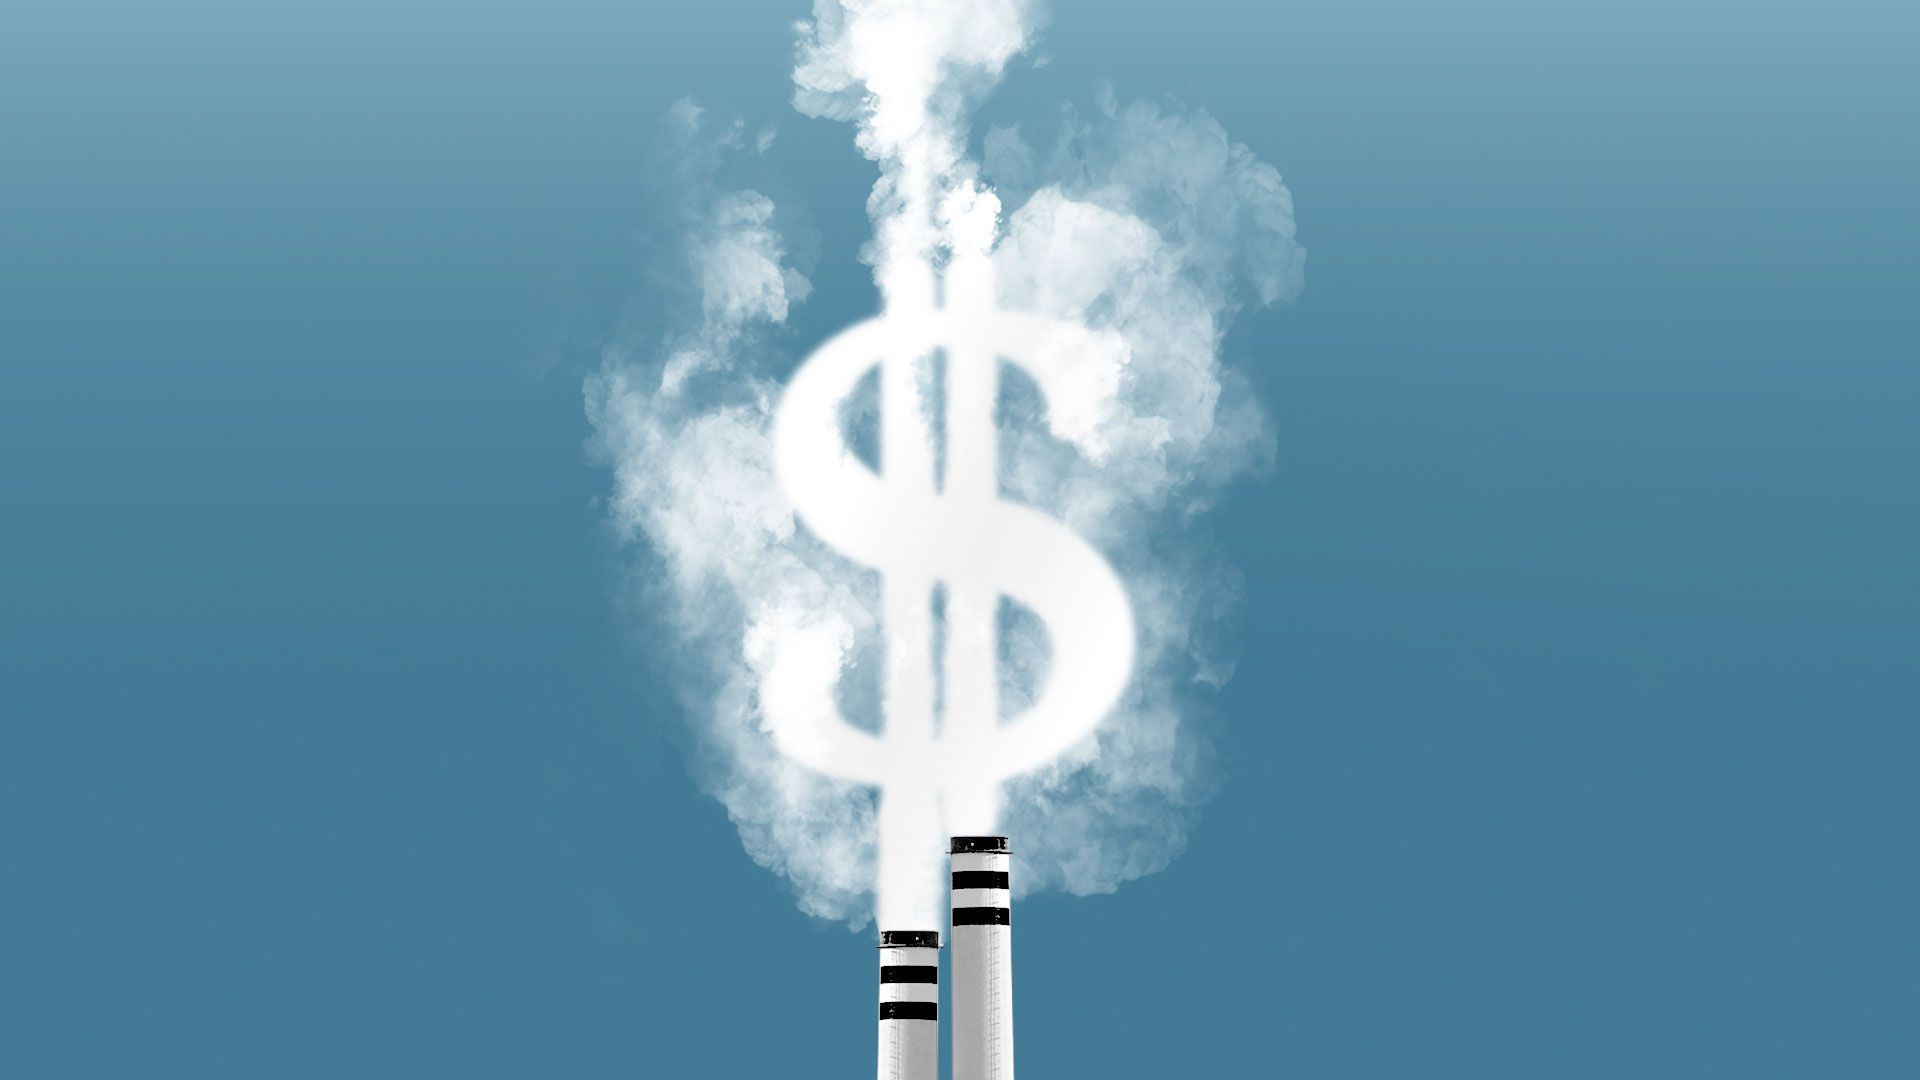 Illustration of smoke from two smoke stacks forming a dollar bill sign.